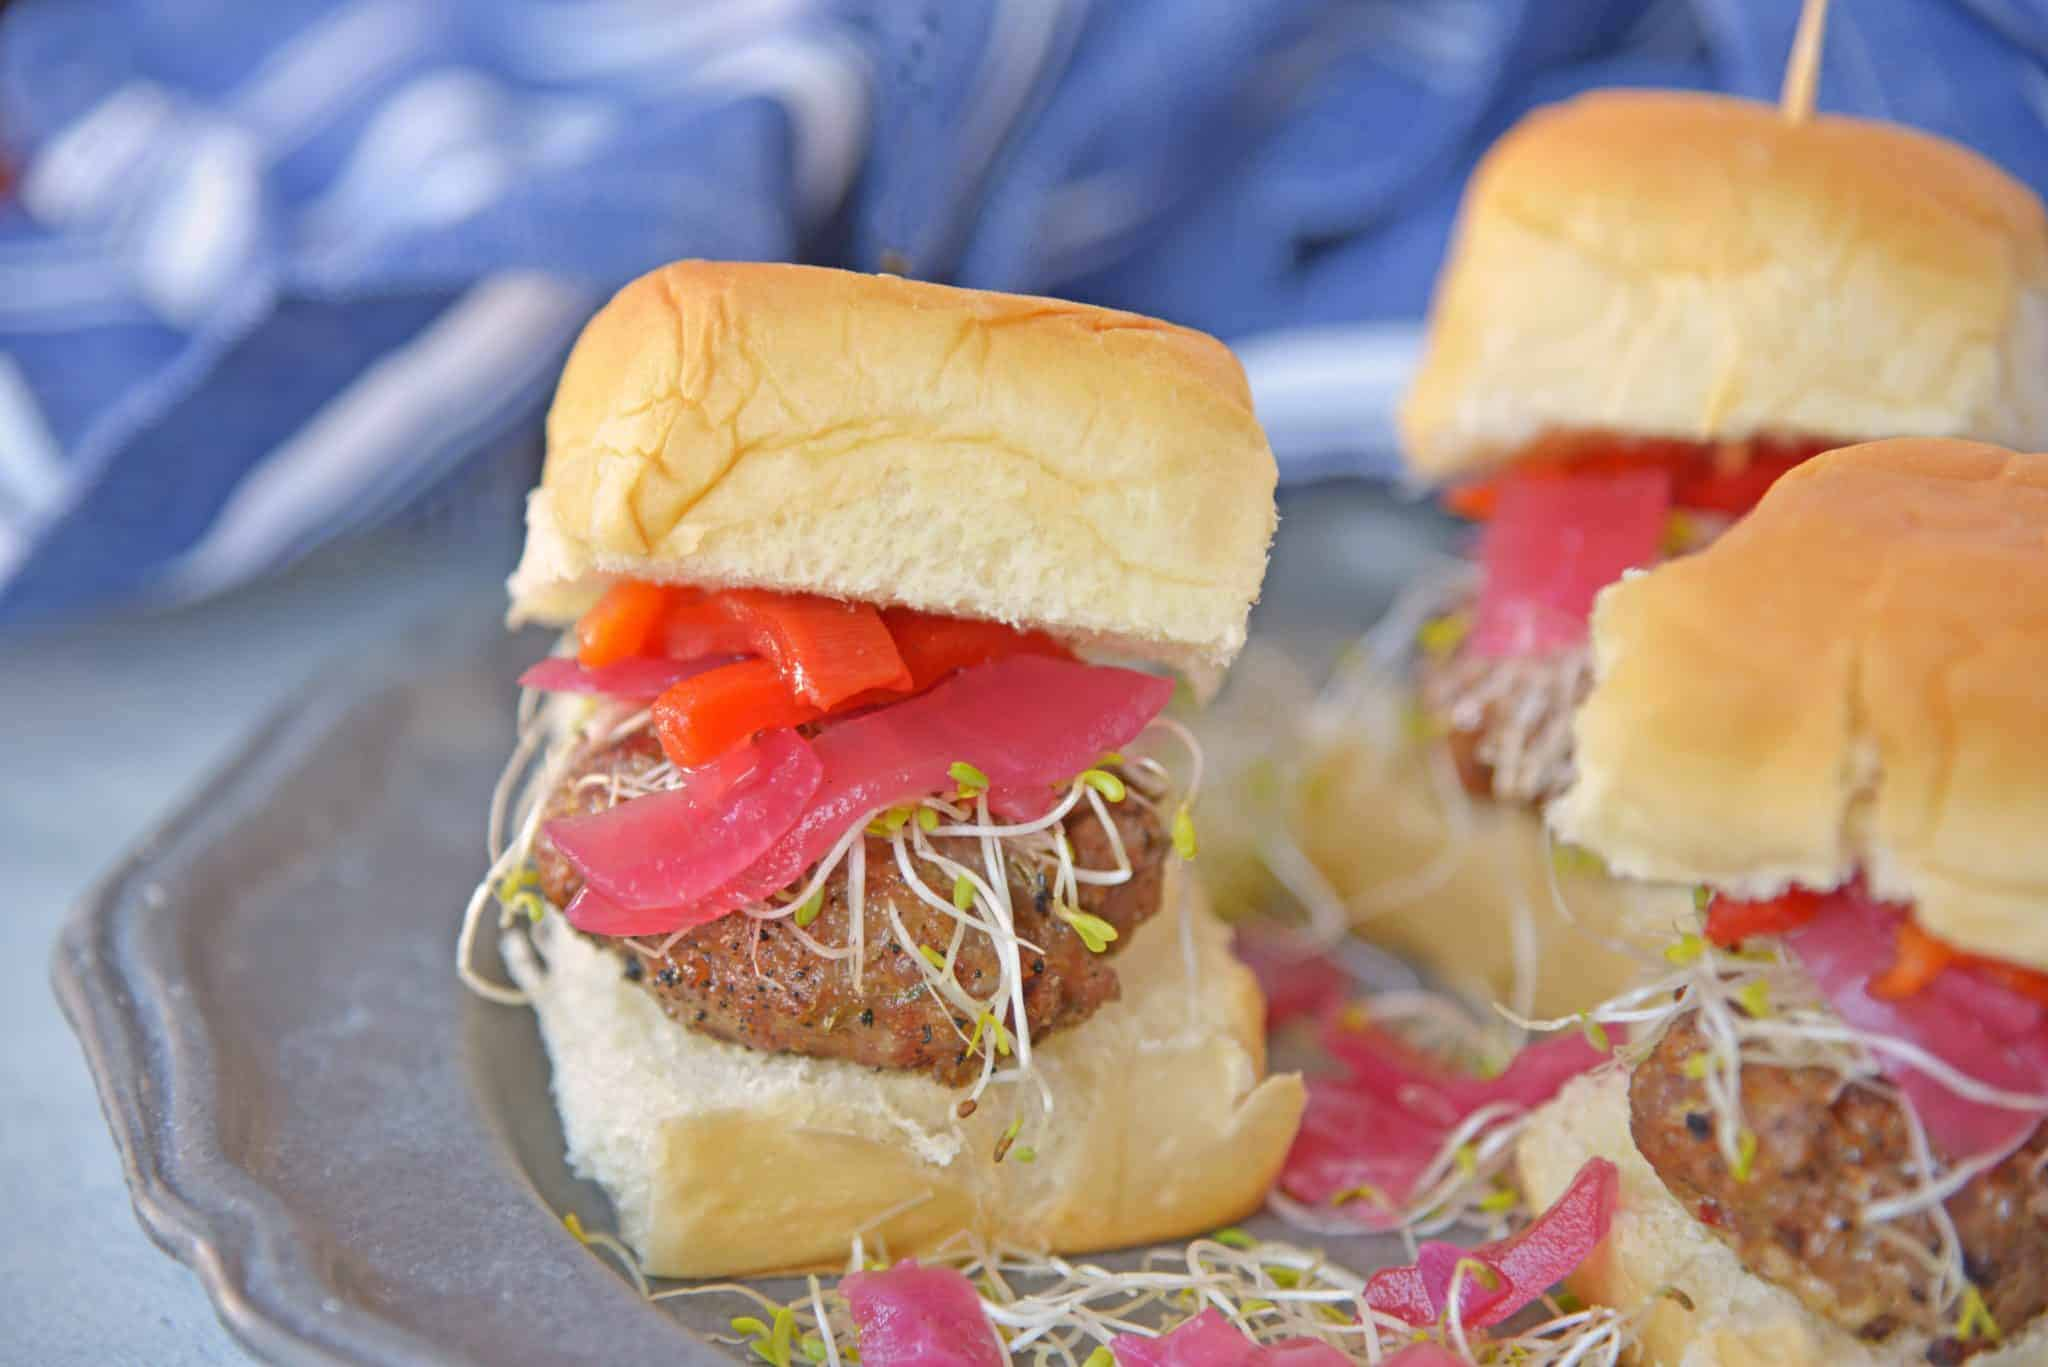 Italian sausage sliders on a silver plate